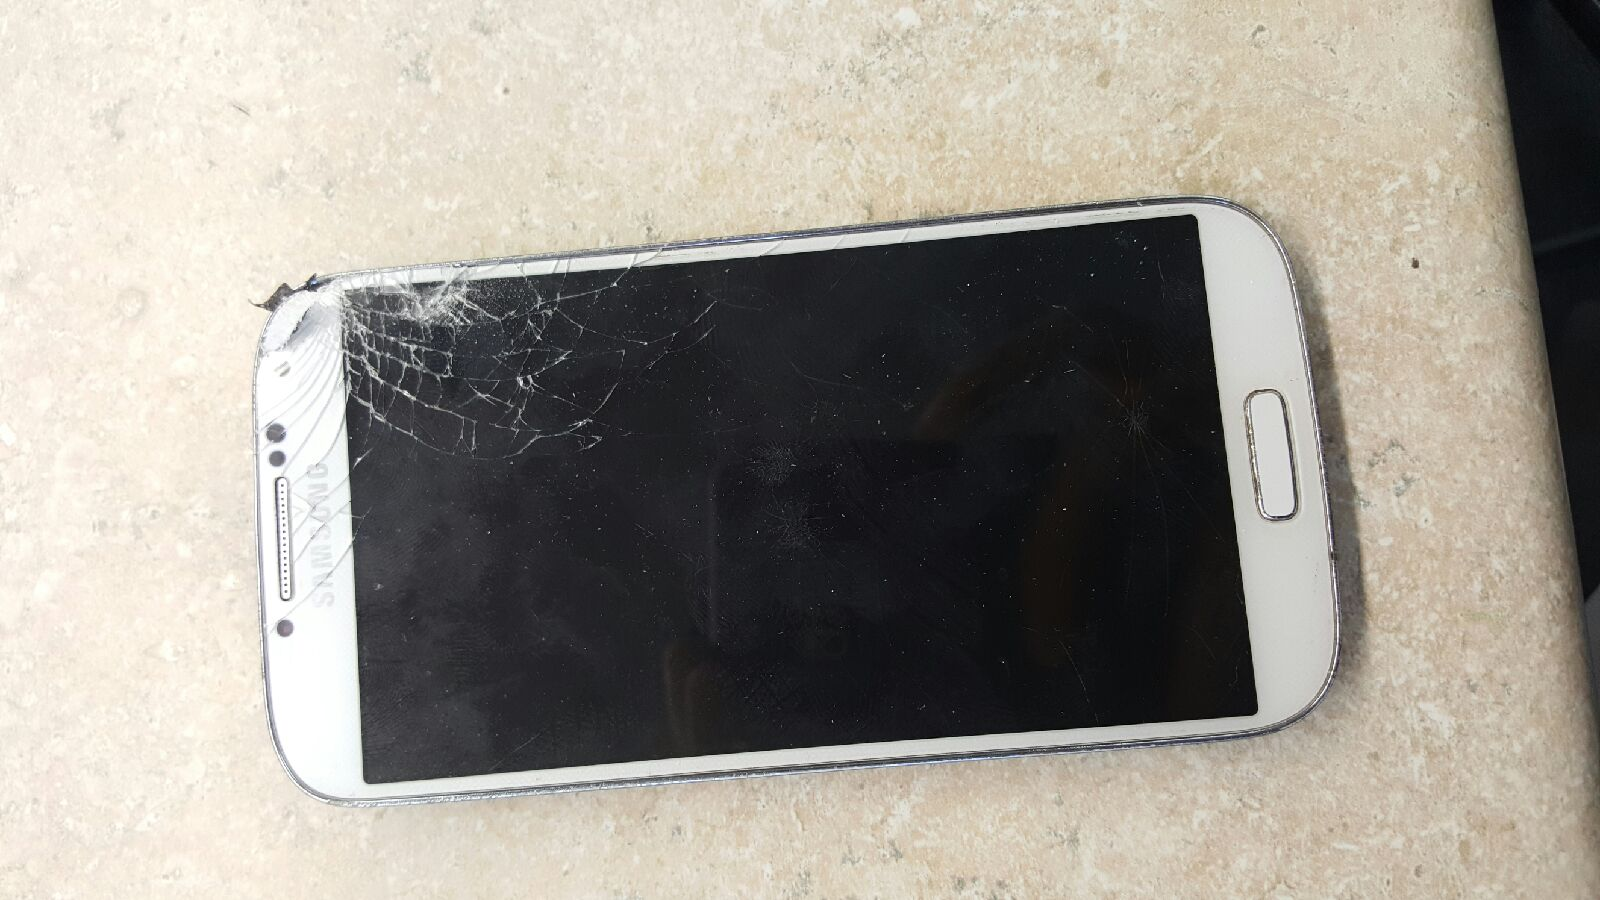 CPR Help as Near as Your Phone